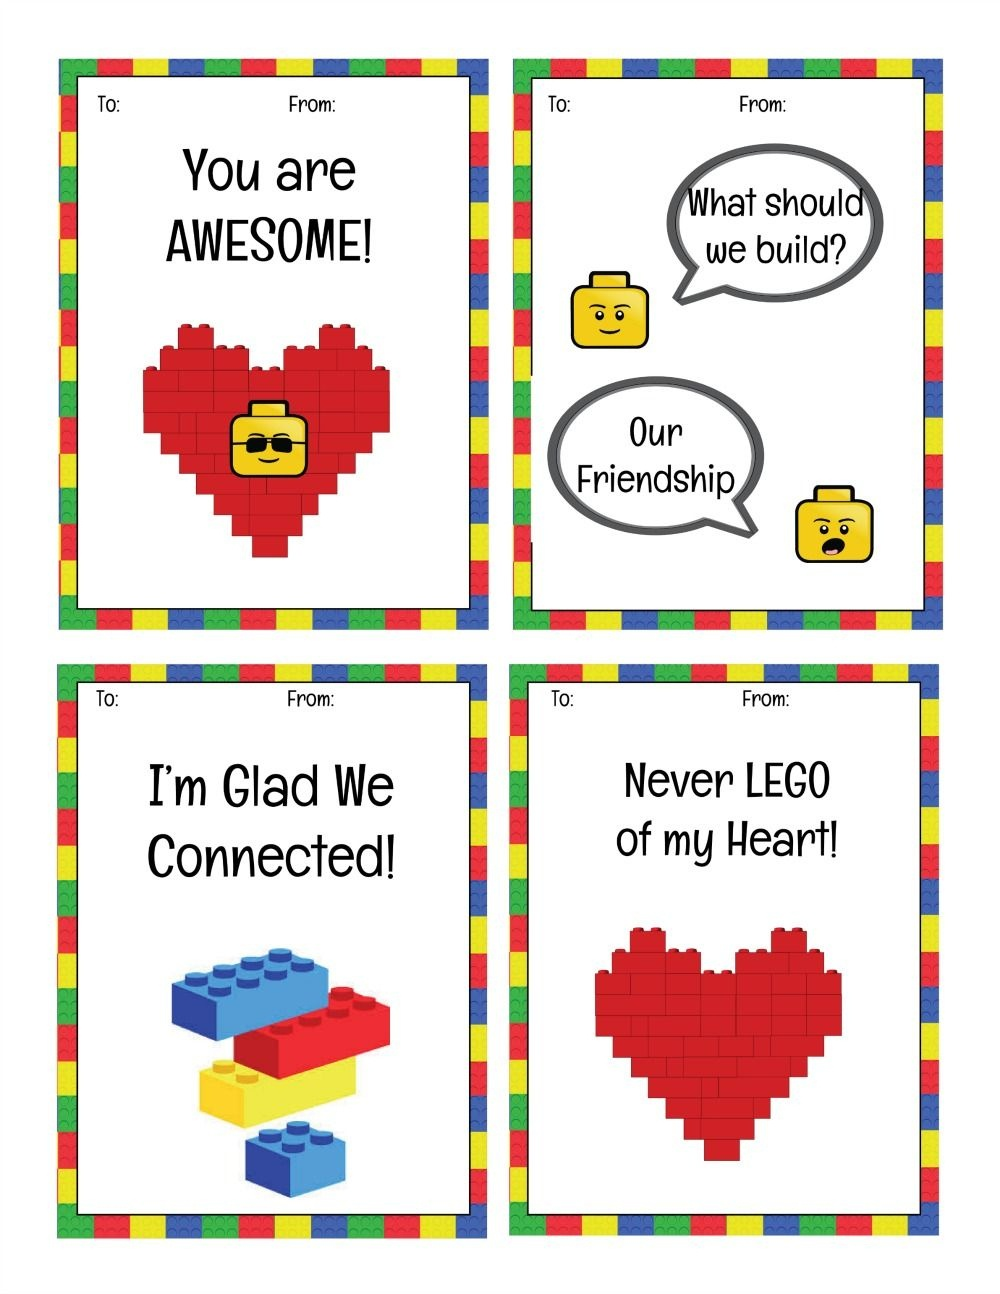 Free Printable Lego Valentine's Day Cards   Valentine's Day   Lego - Free Printable Ninjago Valentine Cards